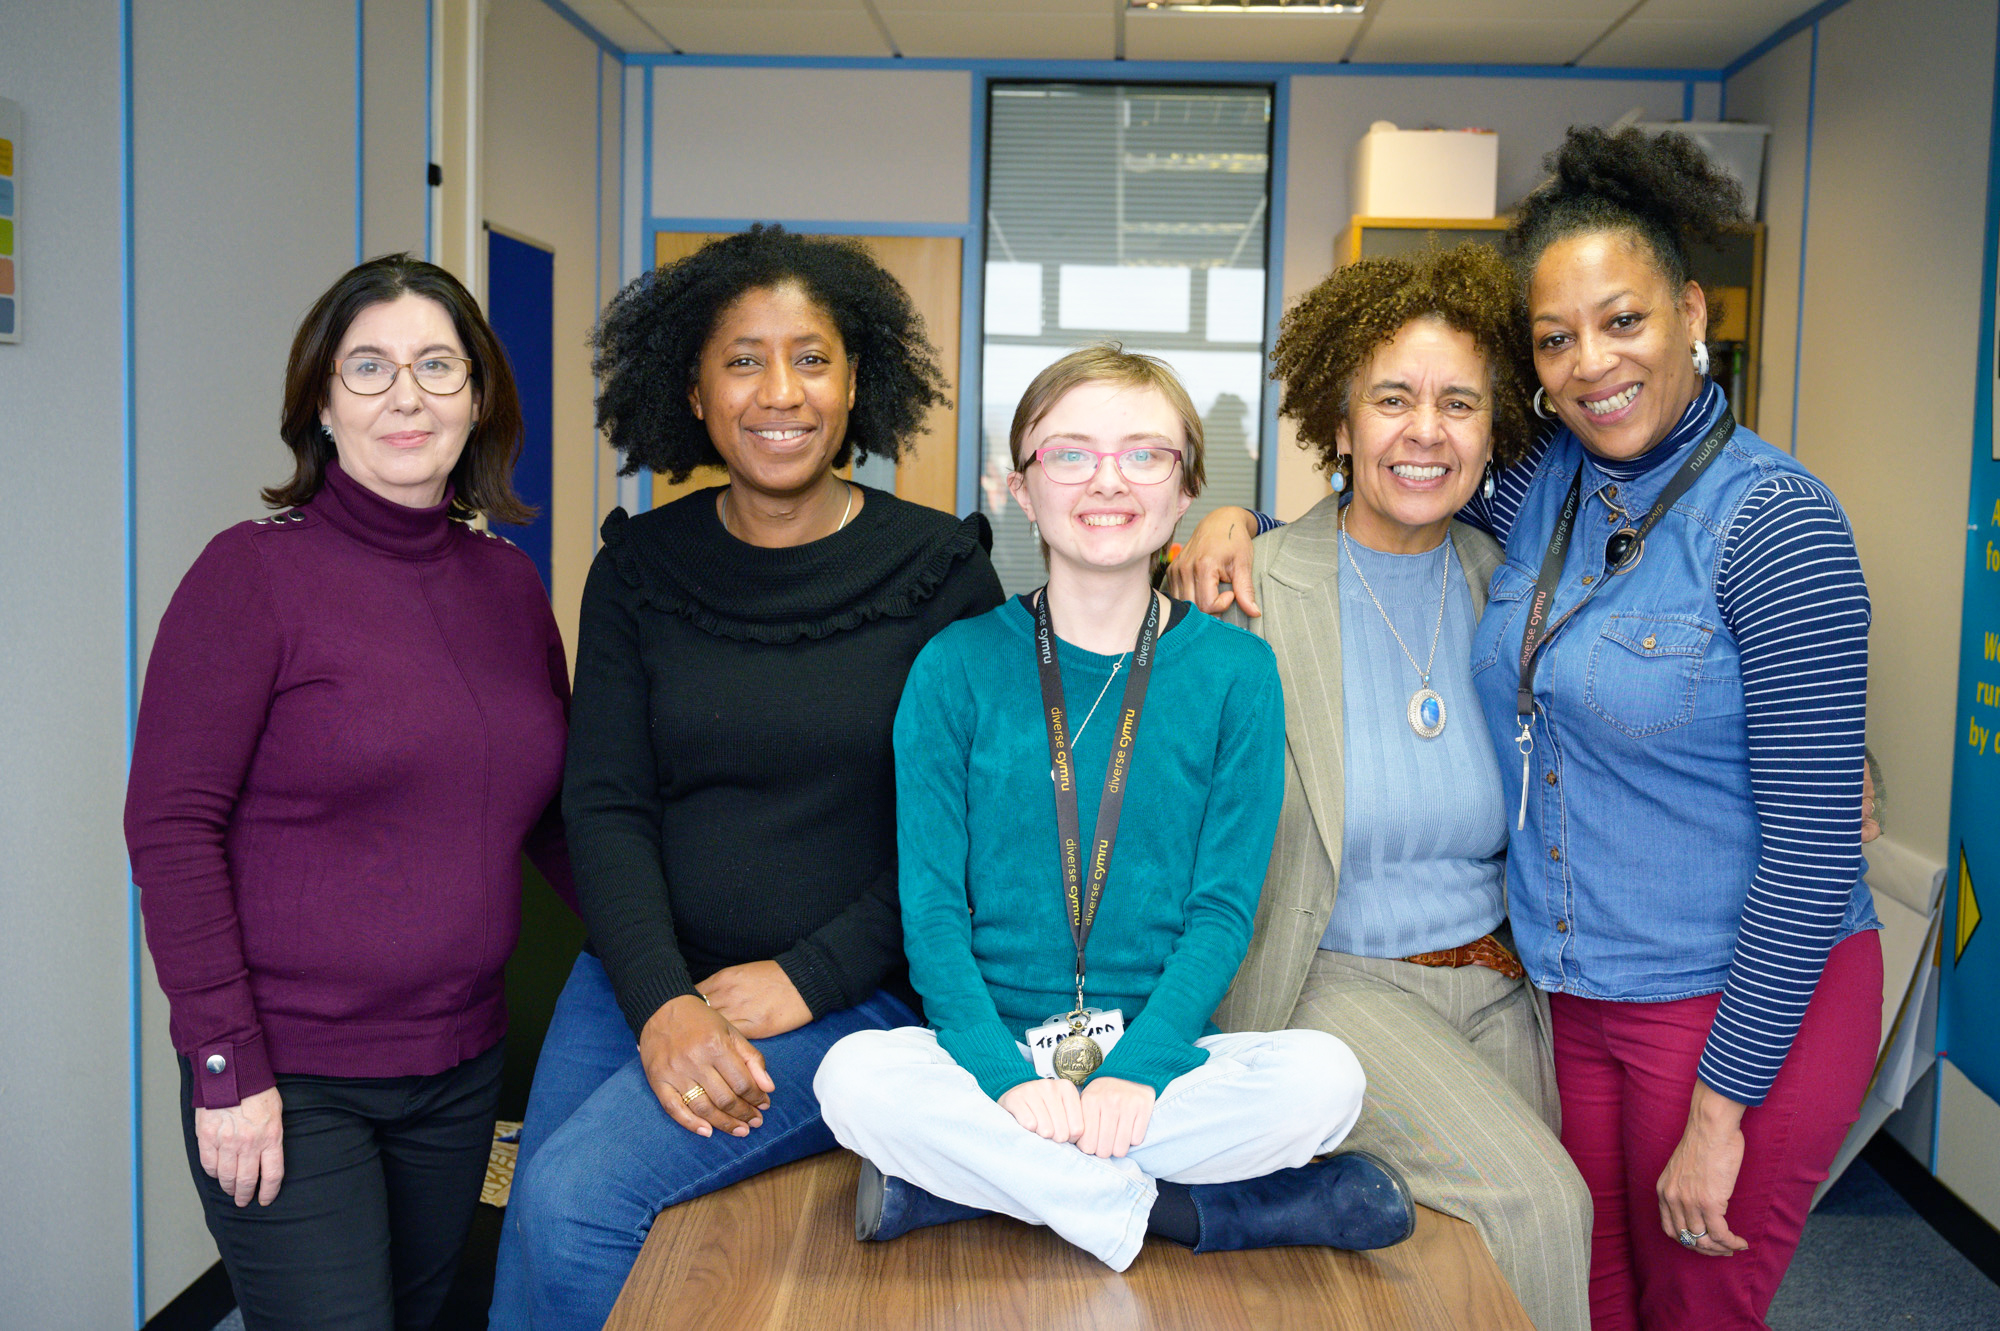 A group of smiling women sit on a desk in an office